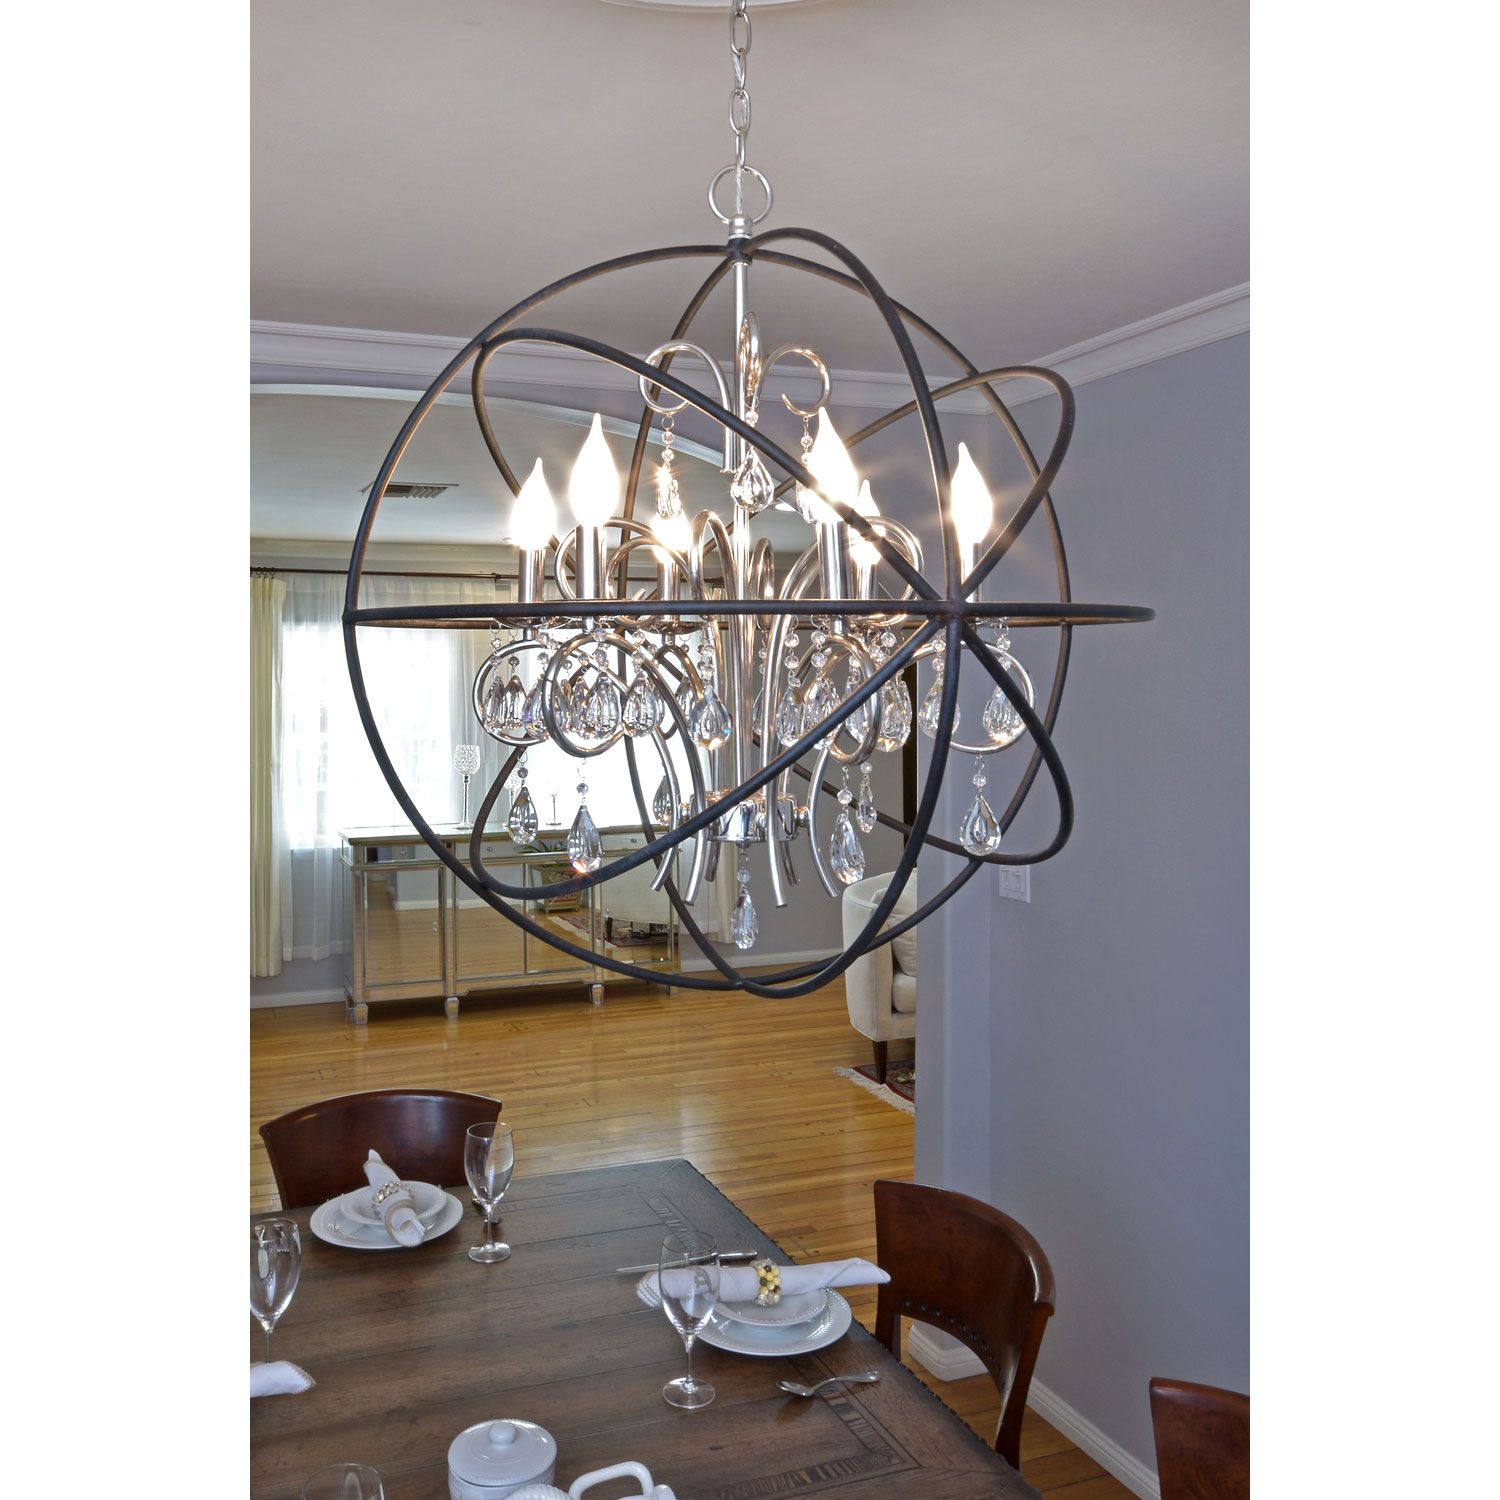 Astonishing unique design of orbit chandelier with iron or stainless for ceiling lighting decorating ideas